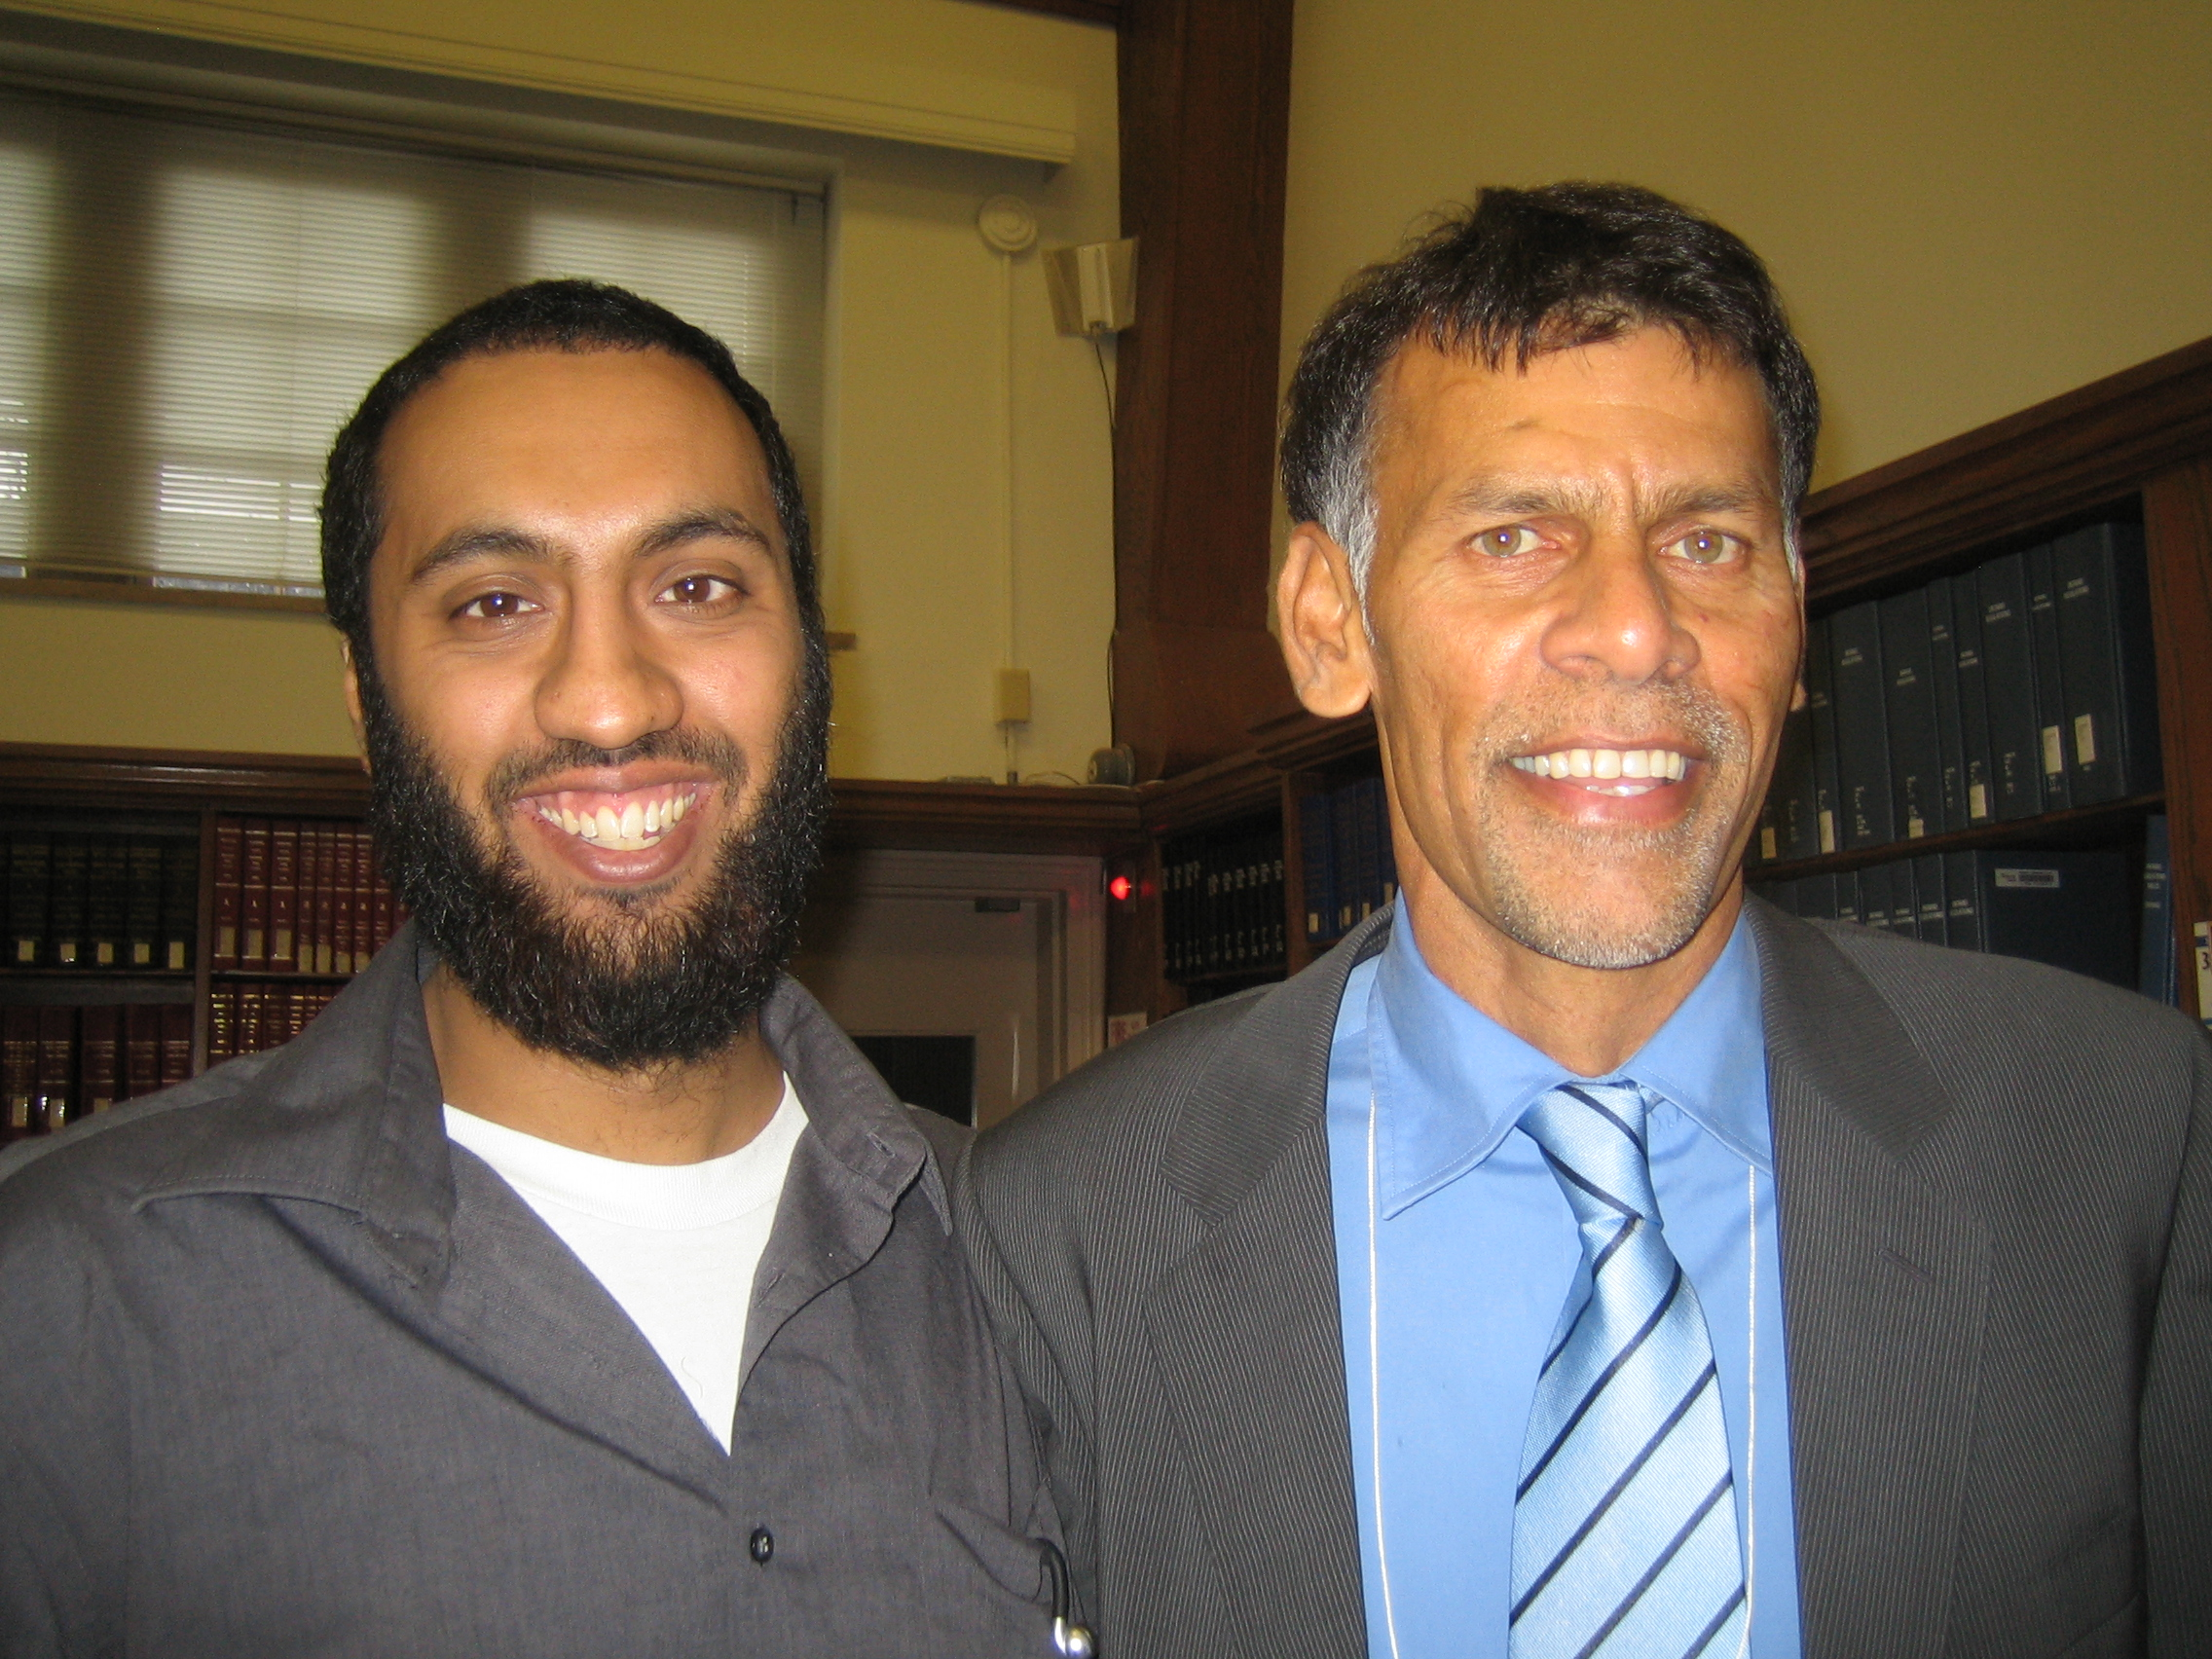 Mr. Hassan Yussuff, Secretary-Treasurer, Canadian Labour Congress